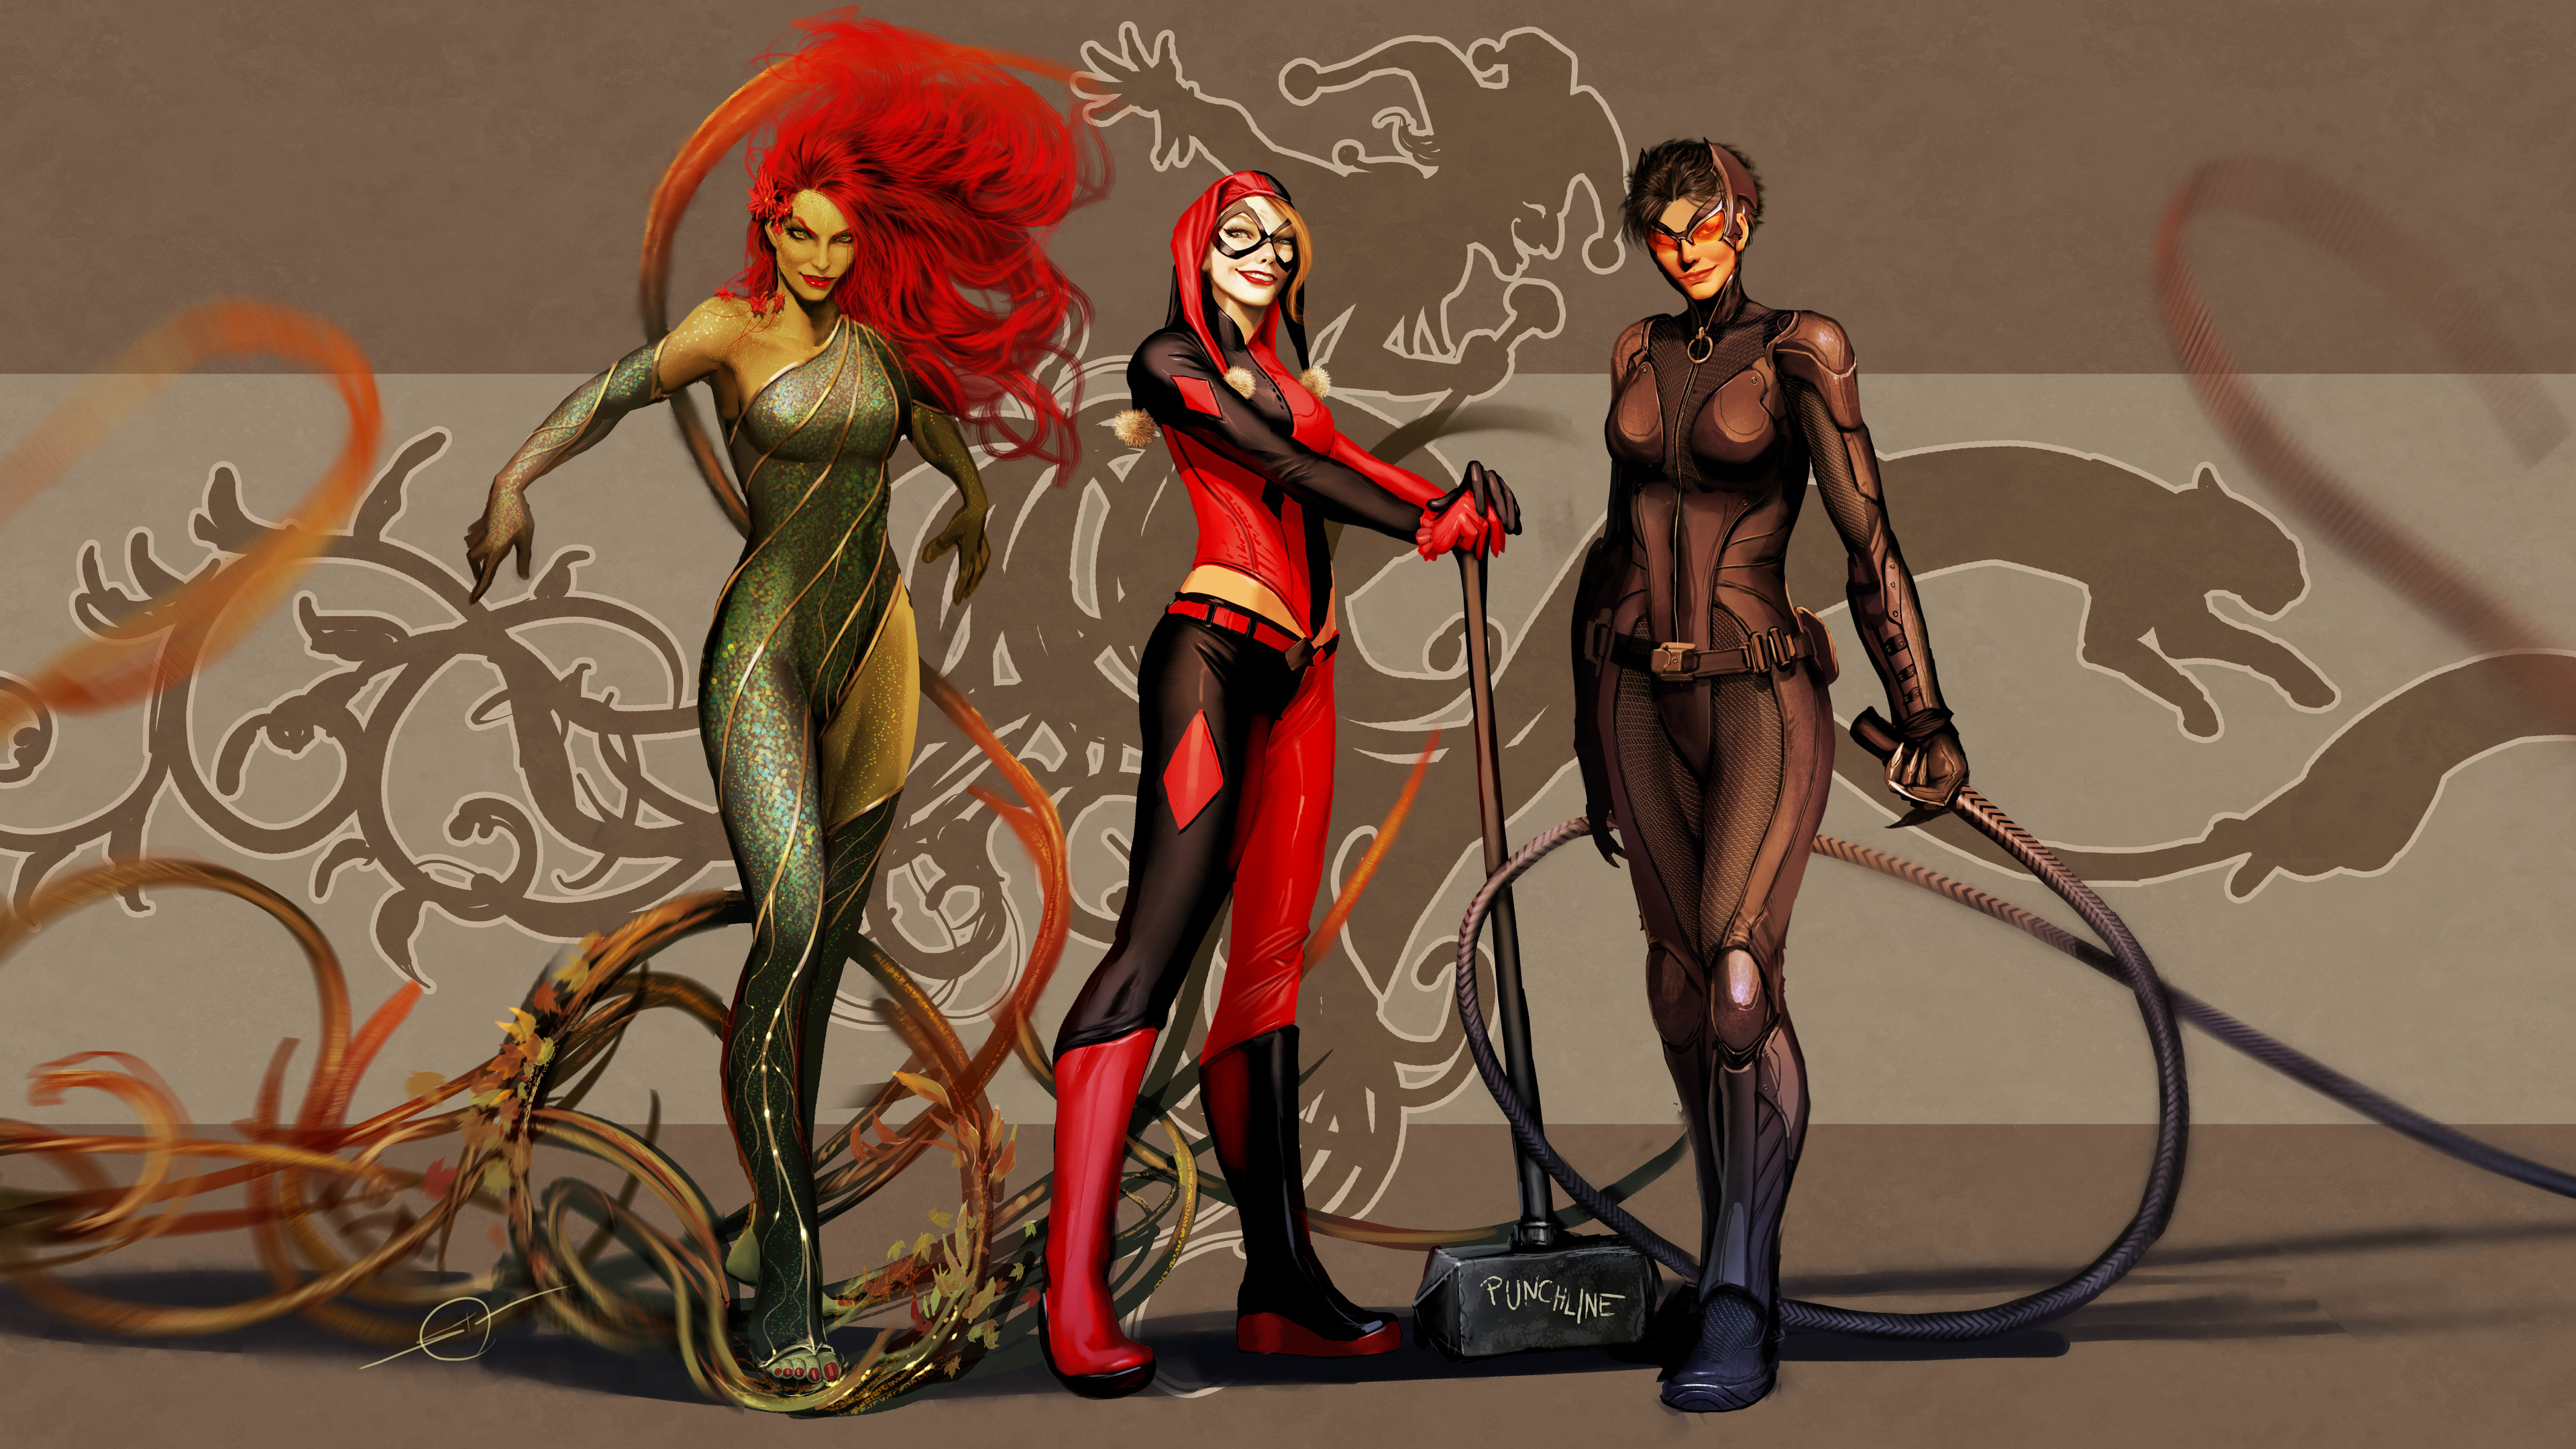 dc supervillain 14k 1543620125 - Dc Supervillain 14k - superheroes wallpapers, poison ivy wallpapers, hd-wallpapers, harley quinn wallpapers, catwoman wallpapers, artwork wallpapers, 4k-wallpapers, 14k wallpapers